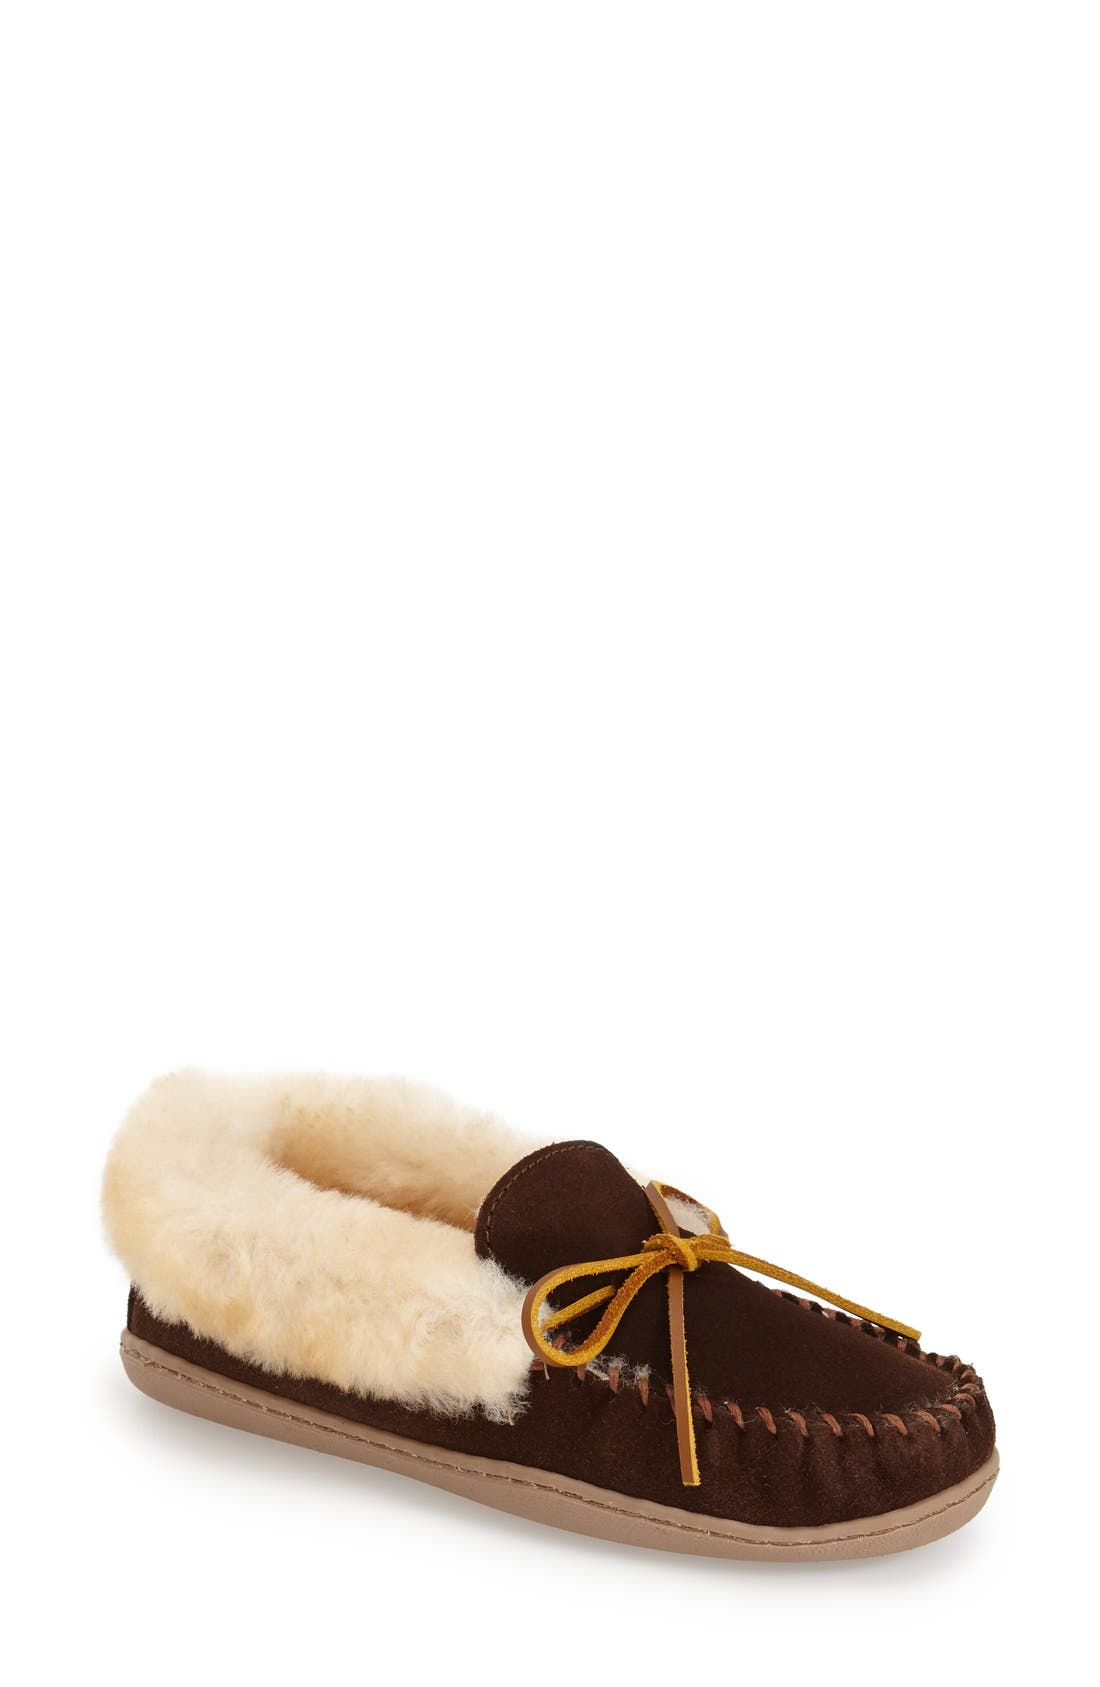 'Alpine' Genuine Shearling Moccasin Slipper,                             Main thumbnail 1, color,                             CHOCOLATE SUEDE